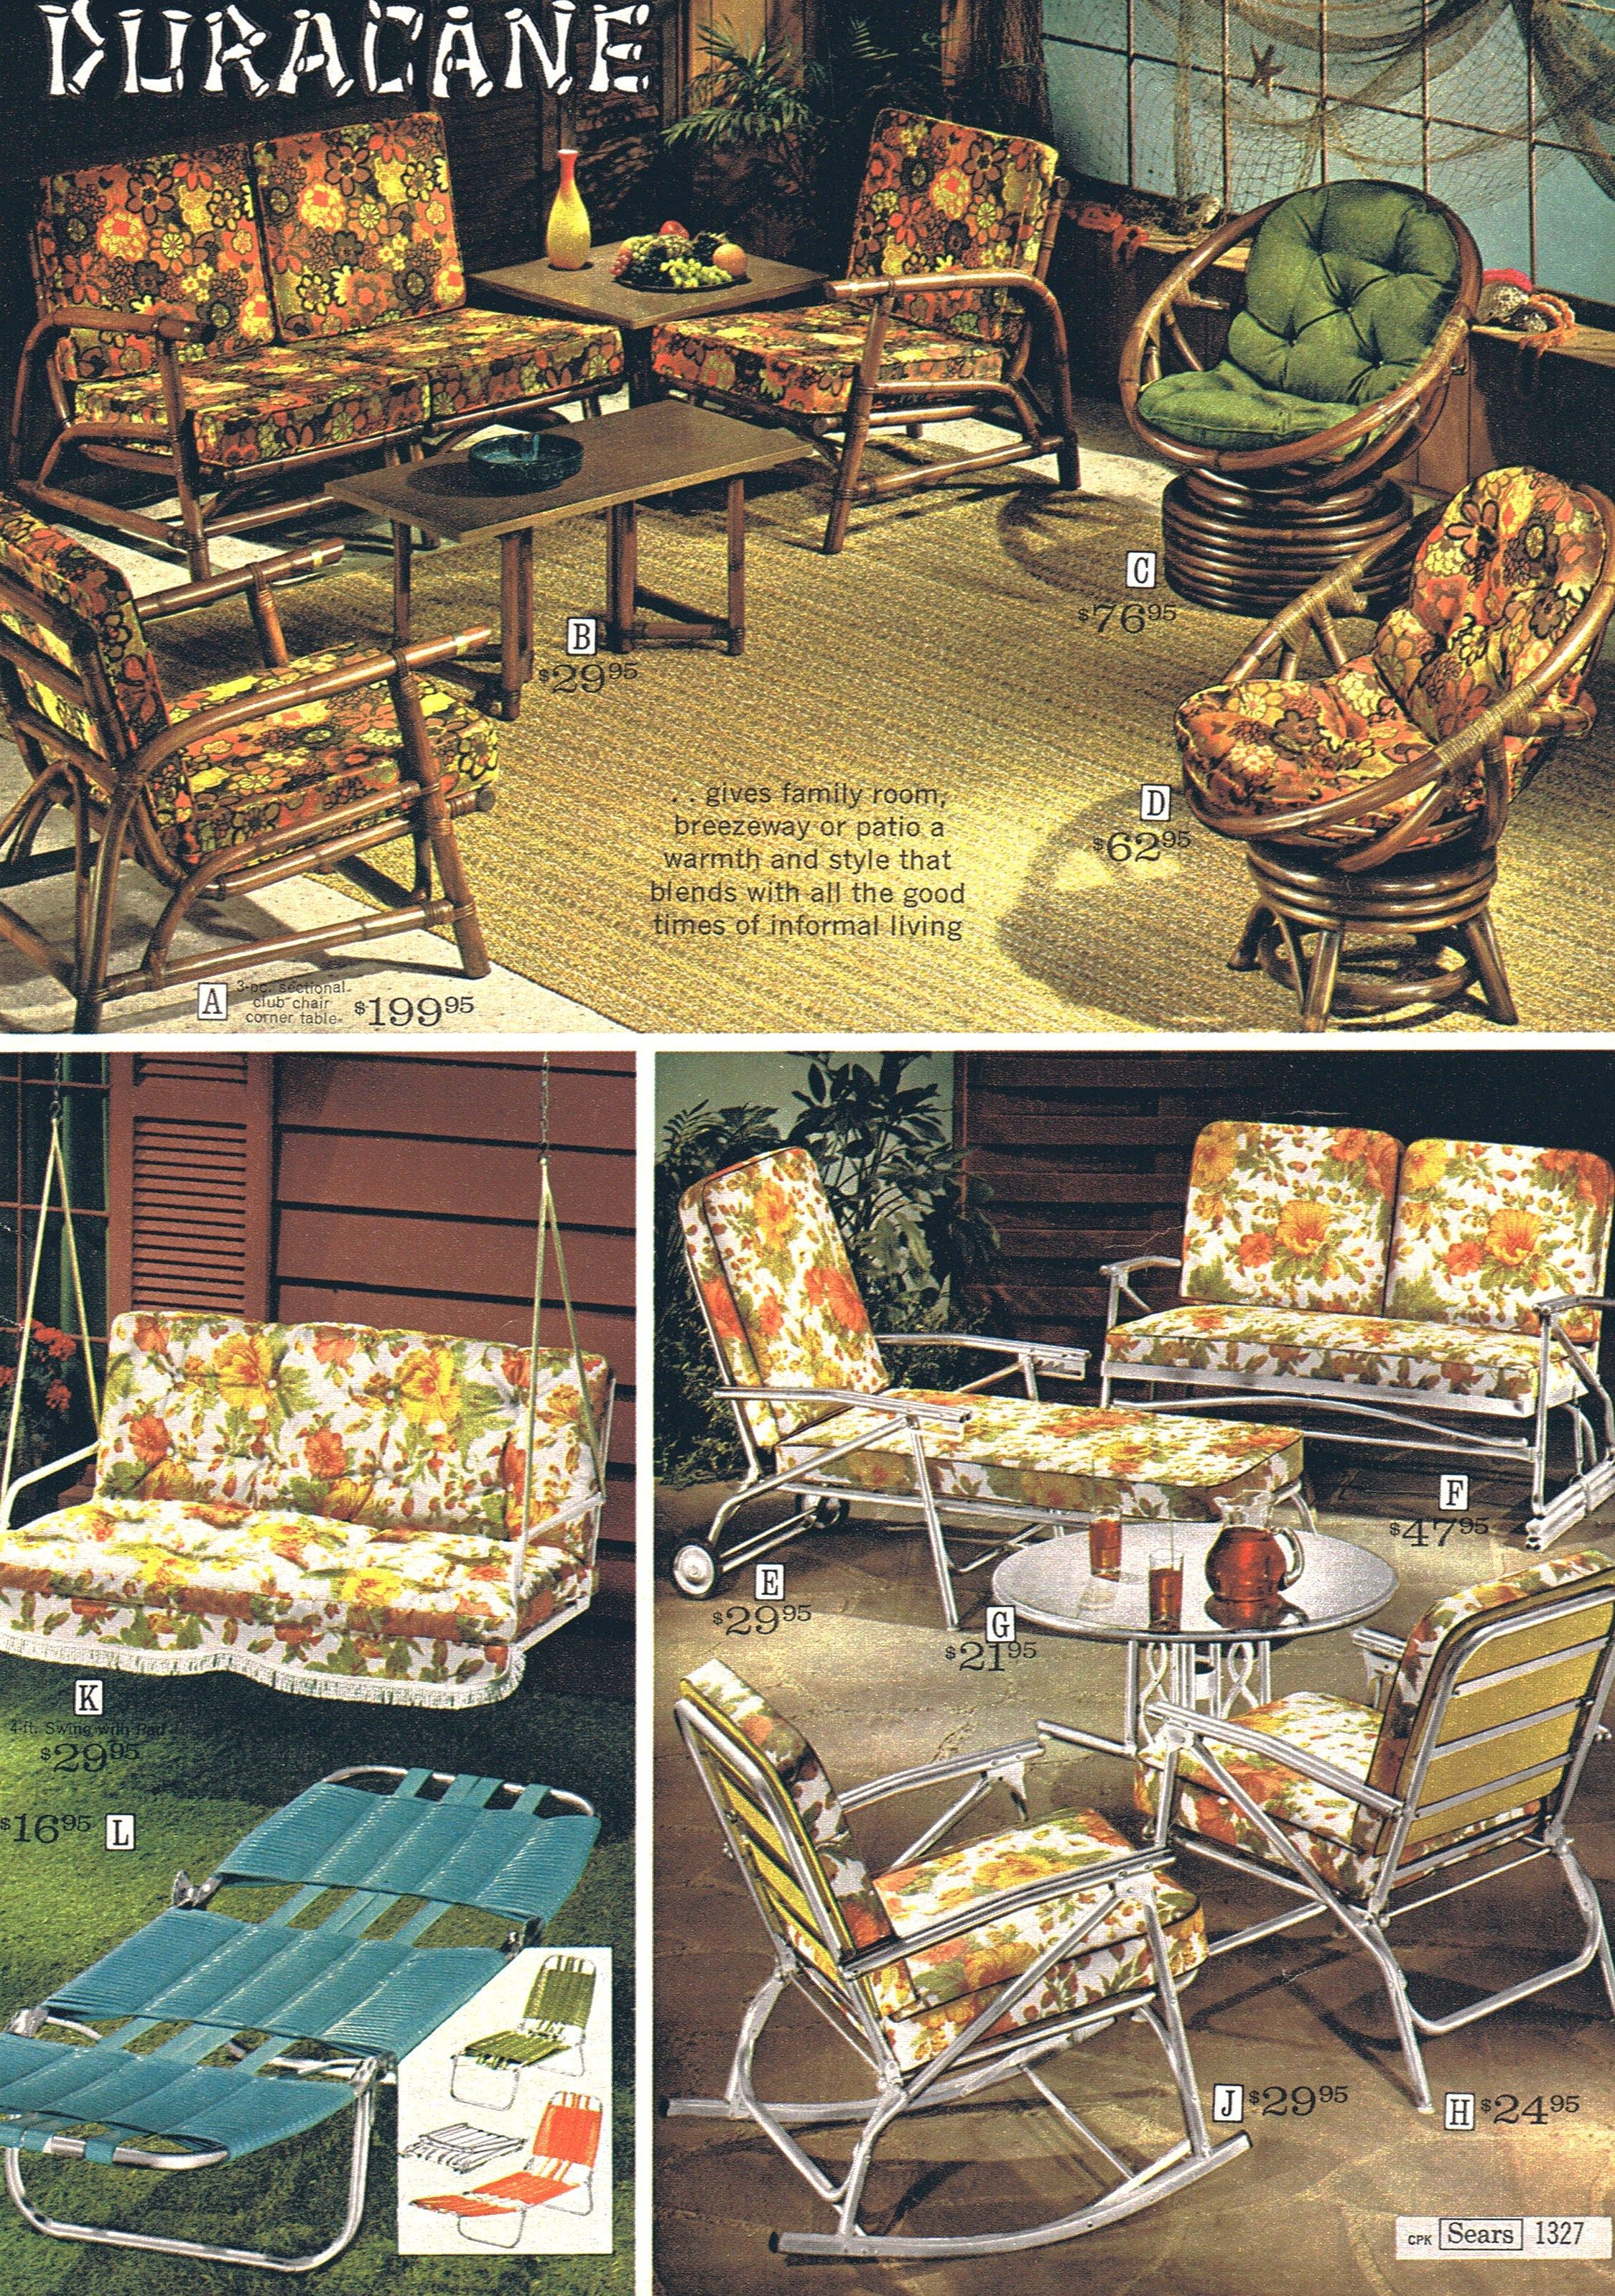 Patio Furniture Sears 68 My Vintage Patio And Yard Vintage In 2020 Vintage Outdoor Furniture Vintage Patio Vintage Patio Furniture